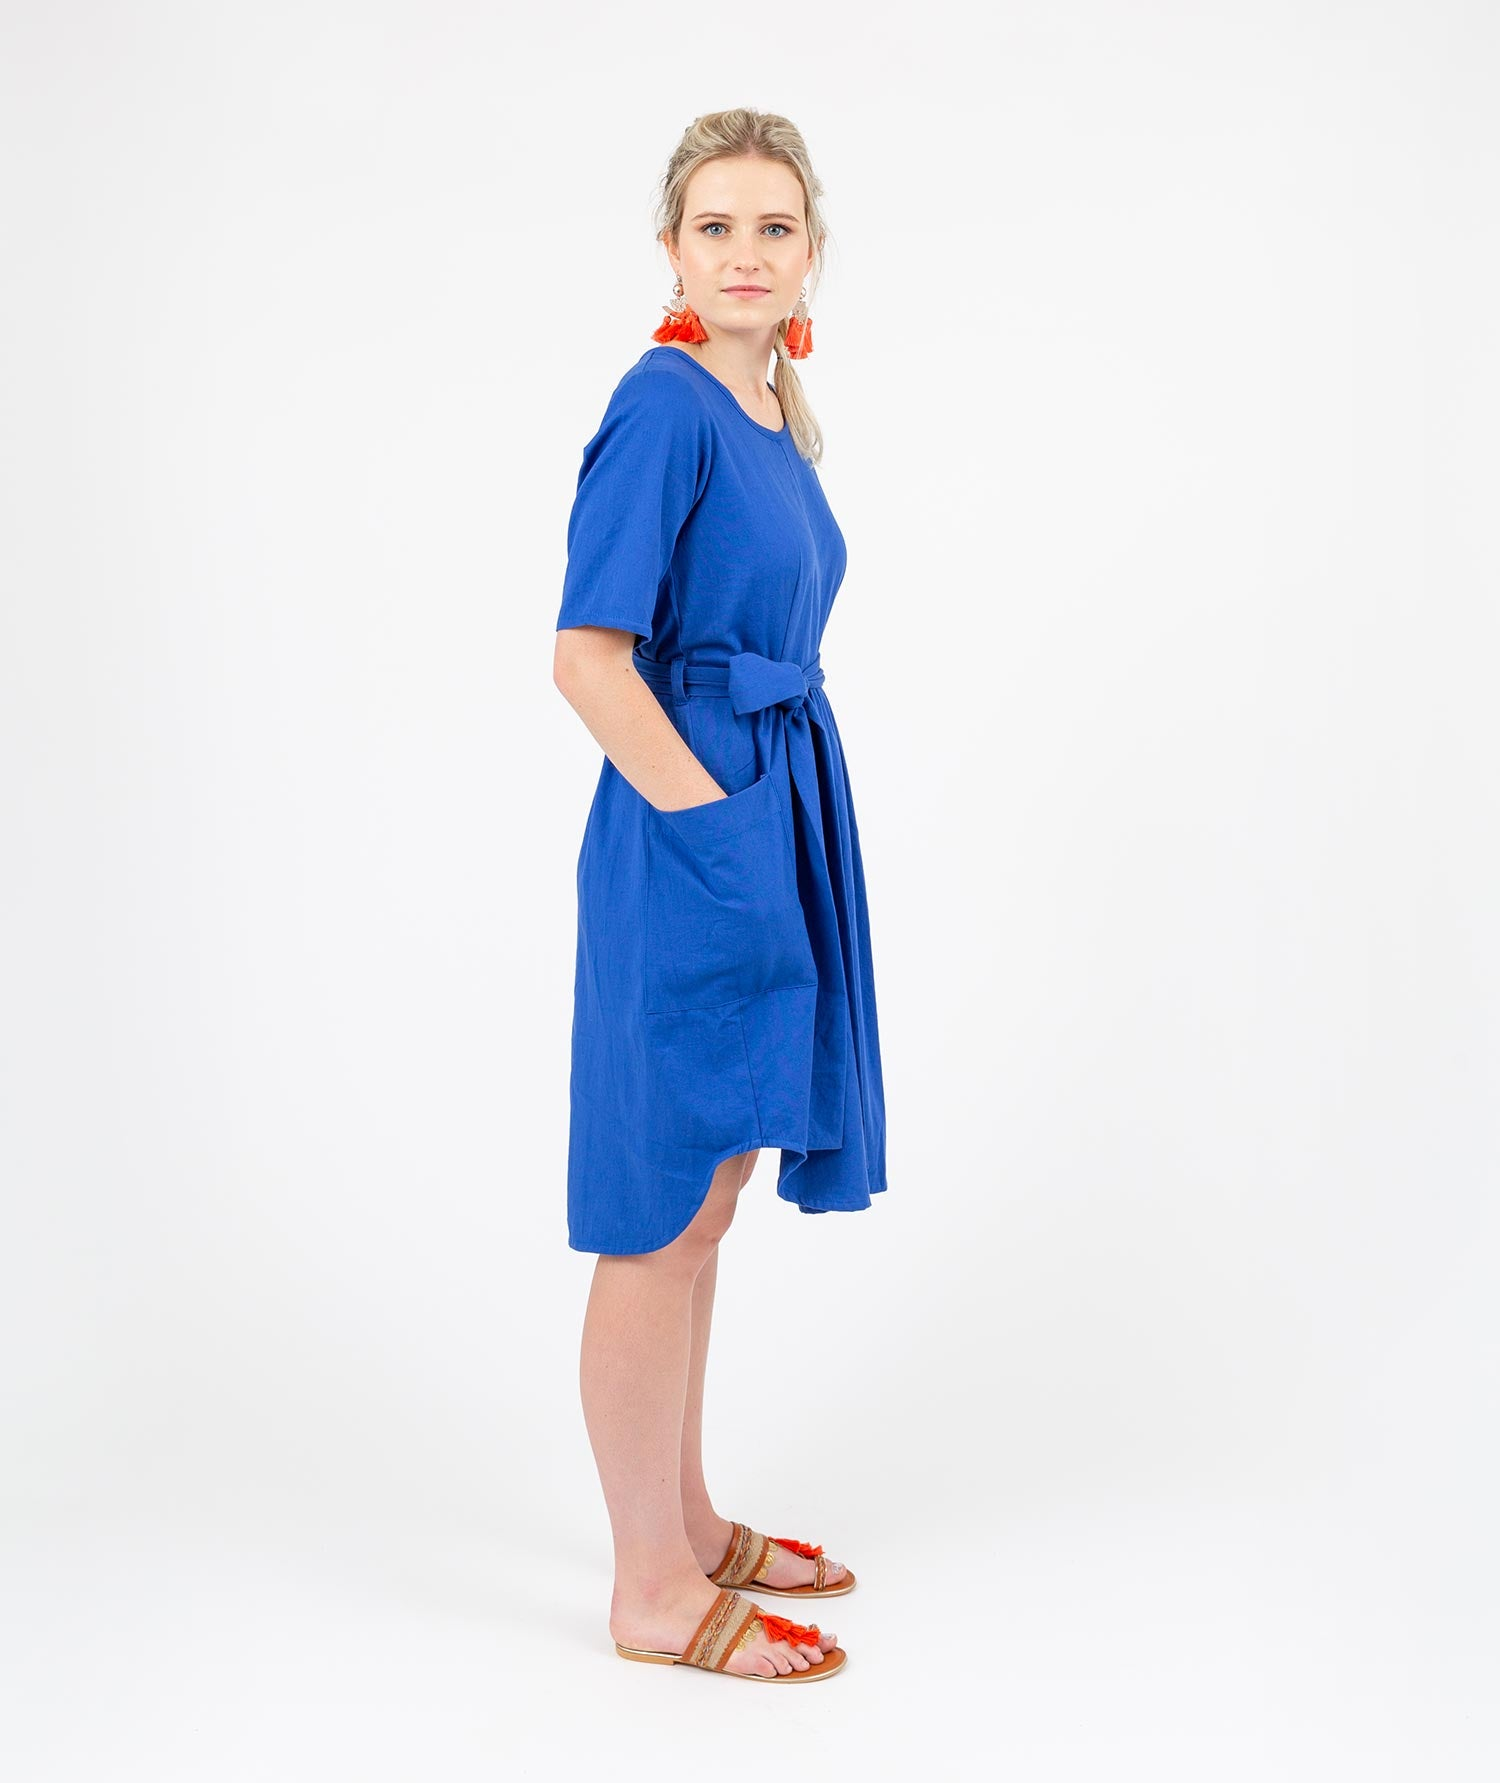 Holi Boli, Travel Dress Blue, Dress, ethical fashion